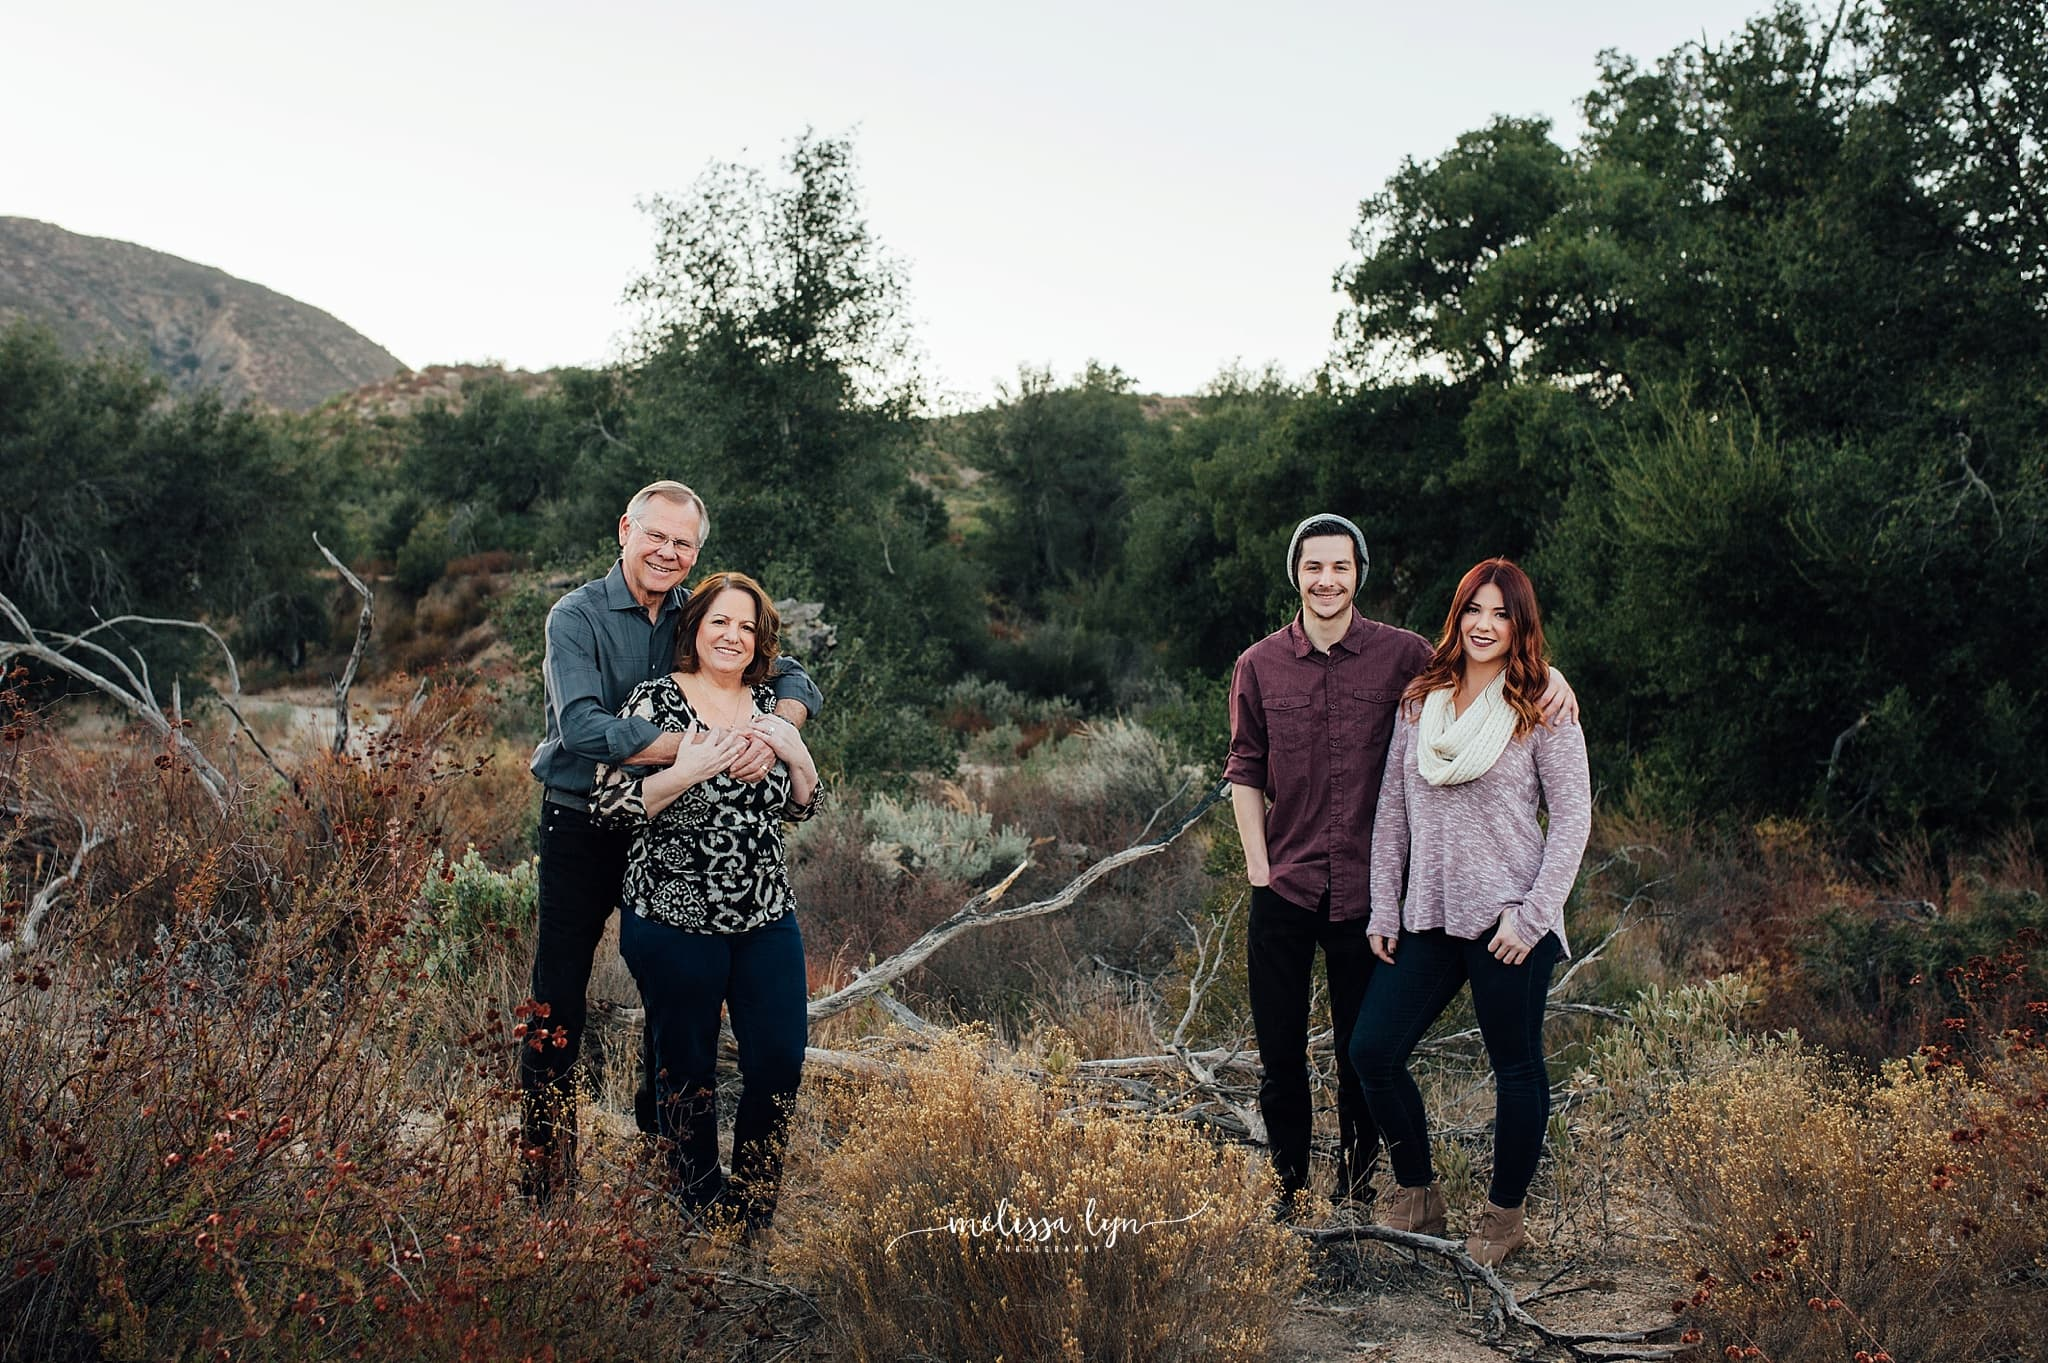 Melissa Lyn Photography - Temecula Family Photographer - Temecula Family Photography